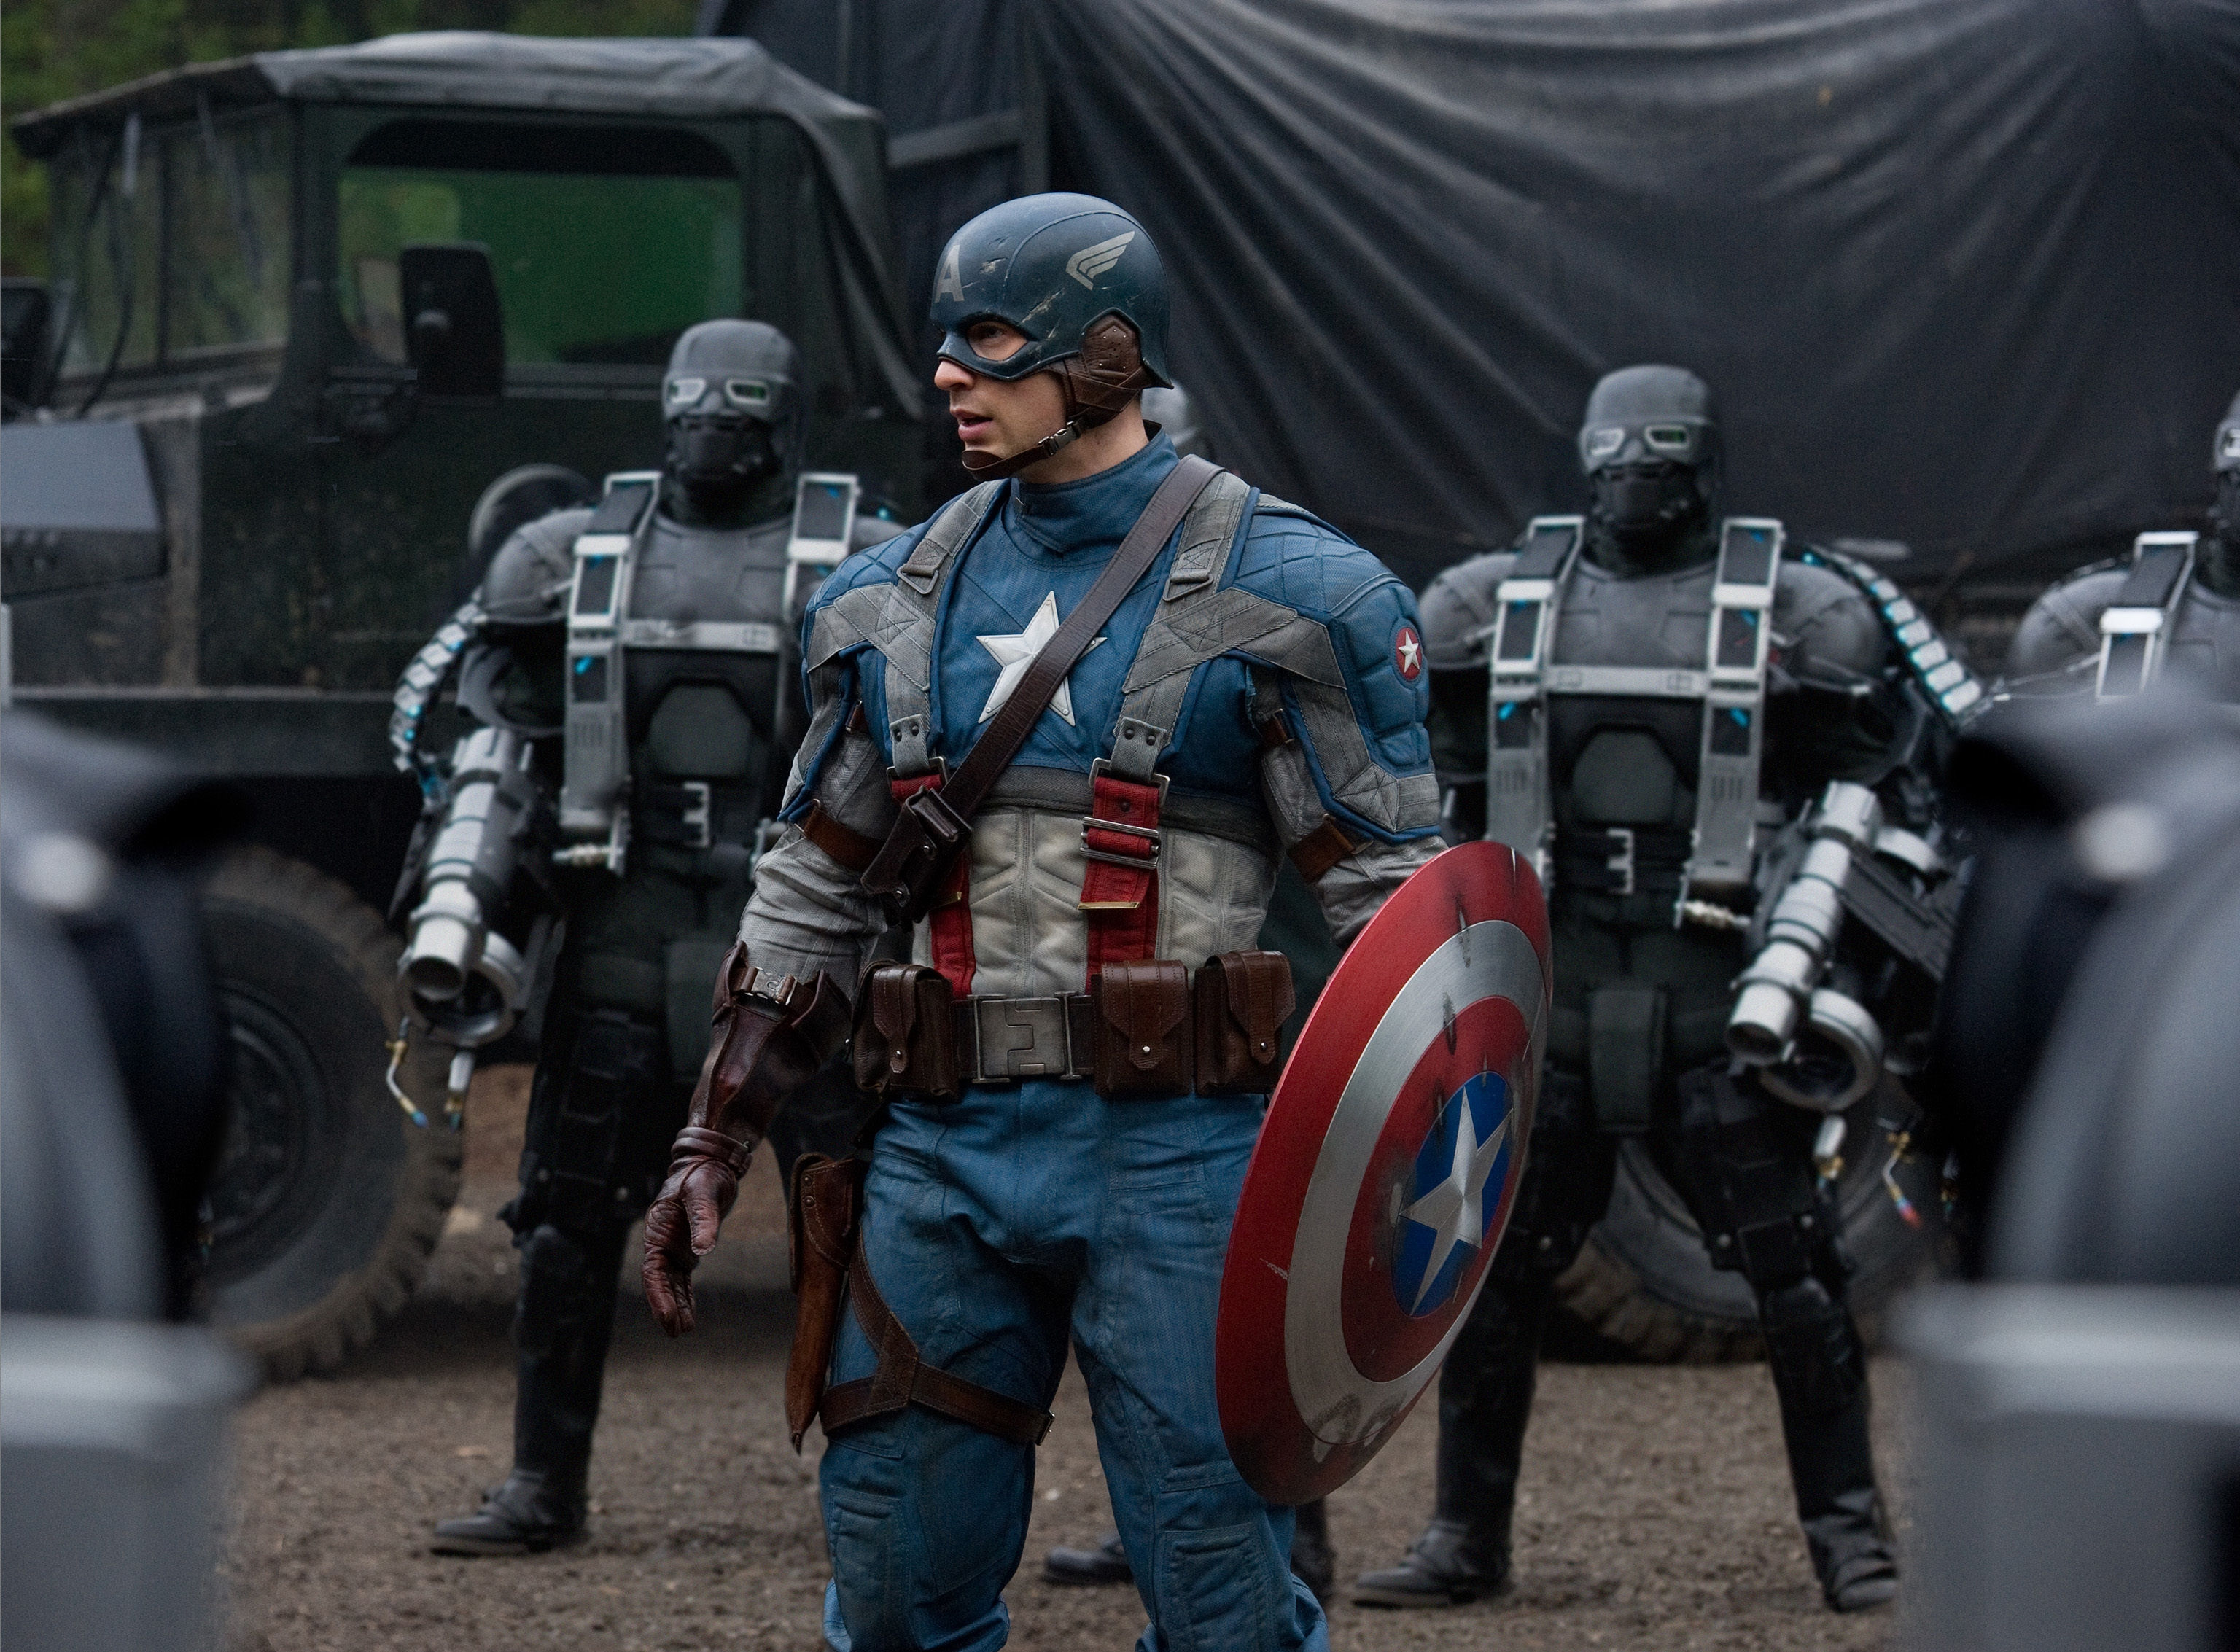 captain america new movie on New Captain America And Thor High Resolution Movie Images   Scifi